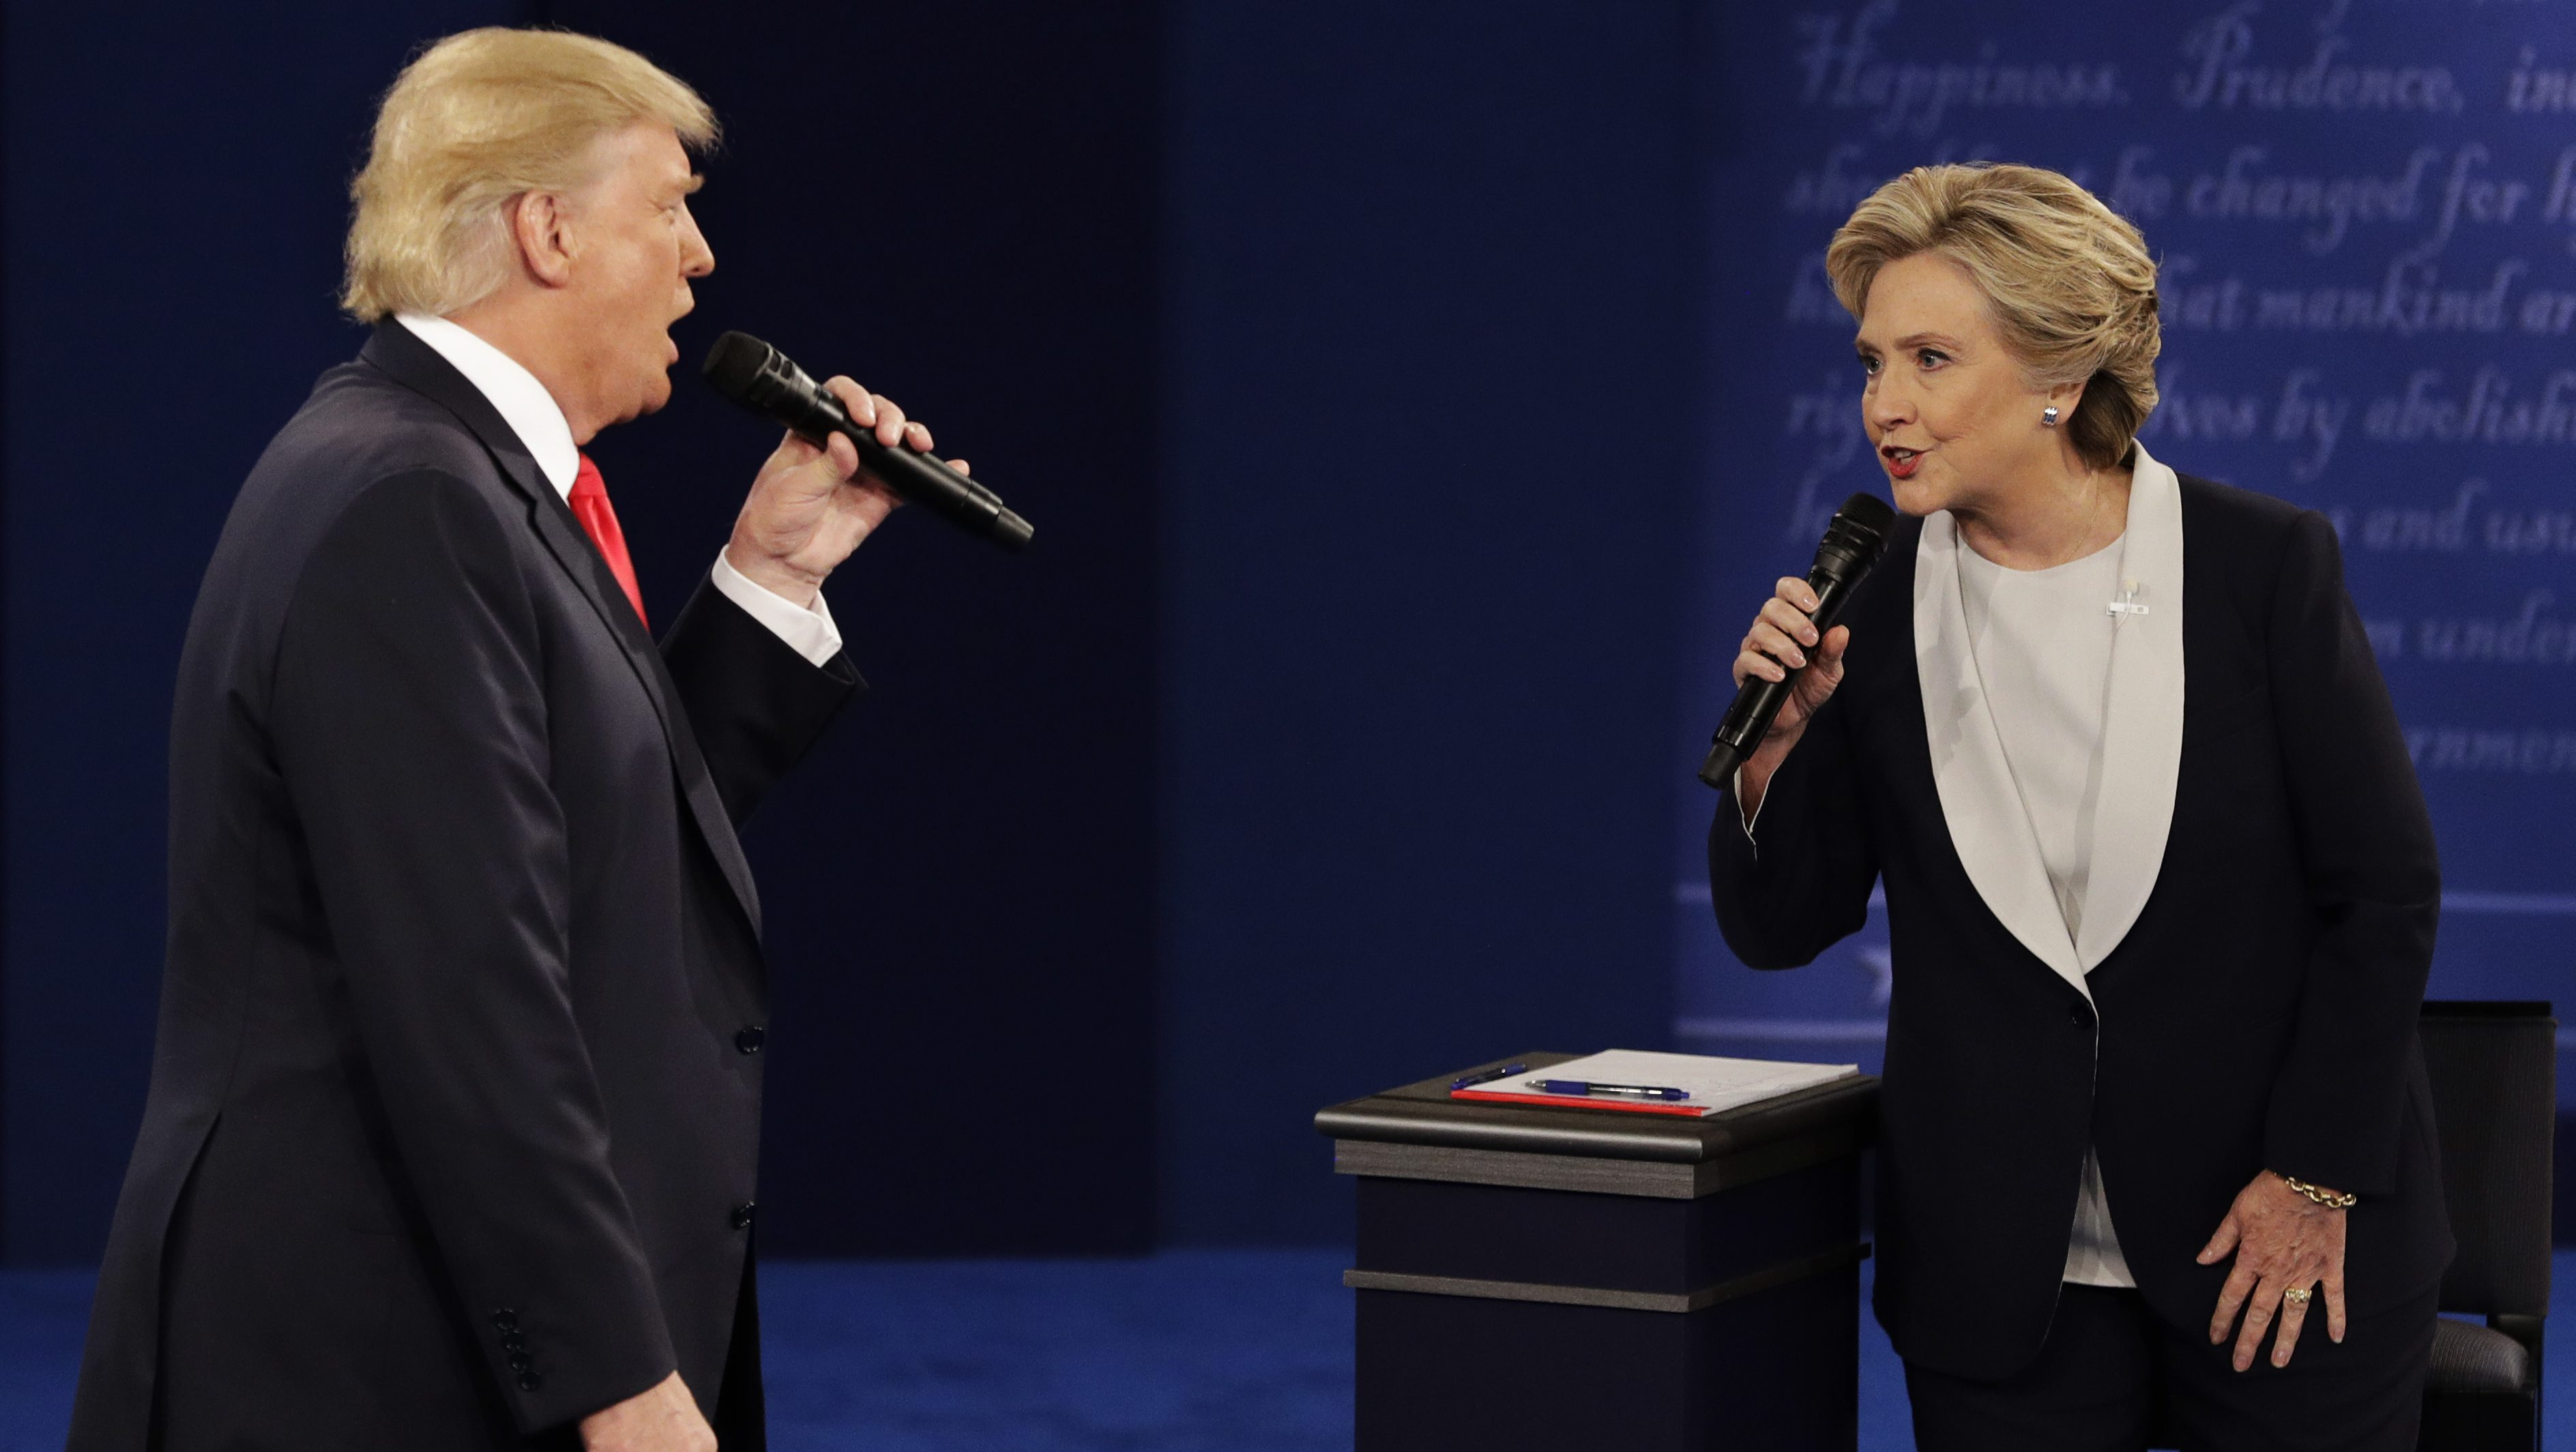 Hilary Clinton and Donald Trump Presidential Debate